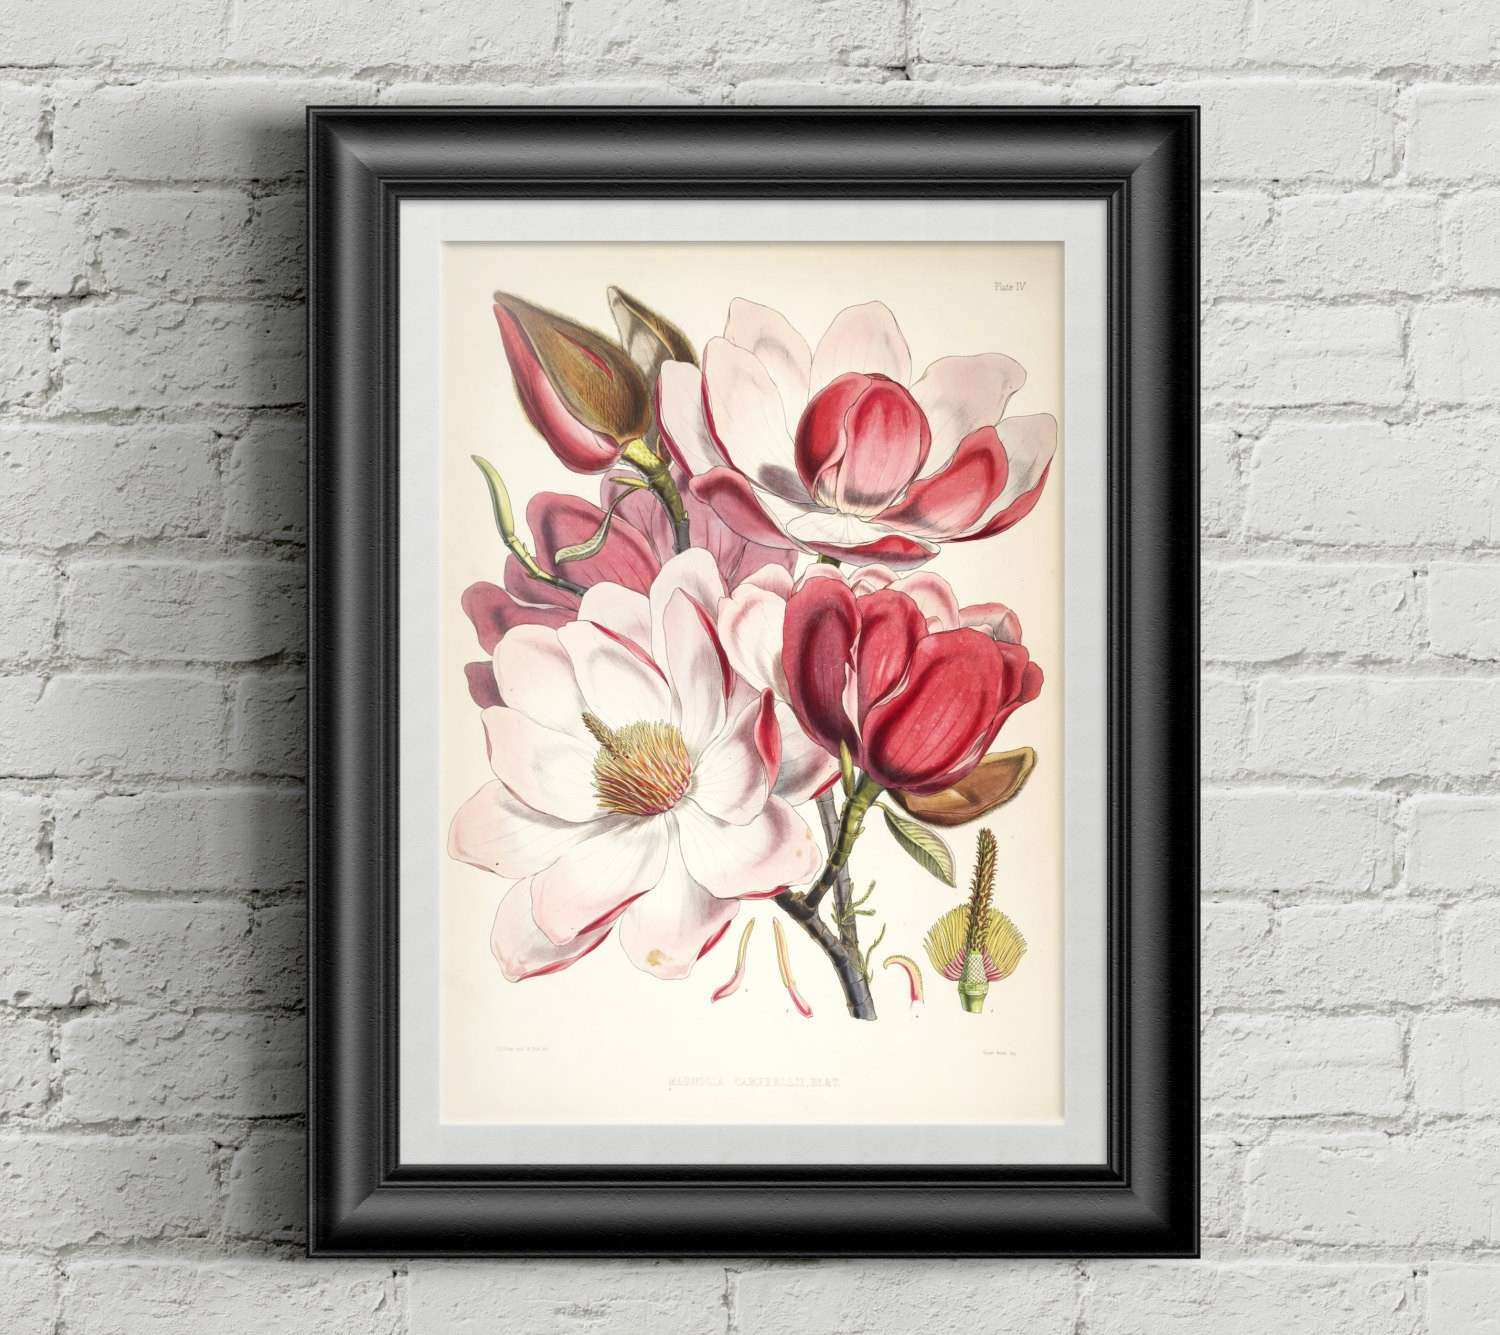 Magnolia Wall Decor Best Of Magnolia Botanical Art Print Wall Art Print Vintage  sc 1 st  Emily Garrison & Magnolia Wall Decor Best Of Magnolia Botanical Art Print Wall Art ...